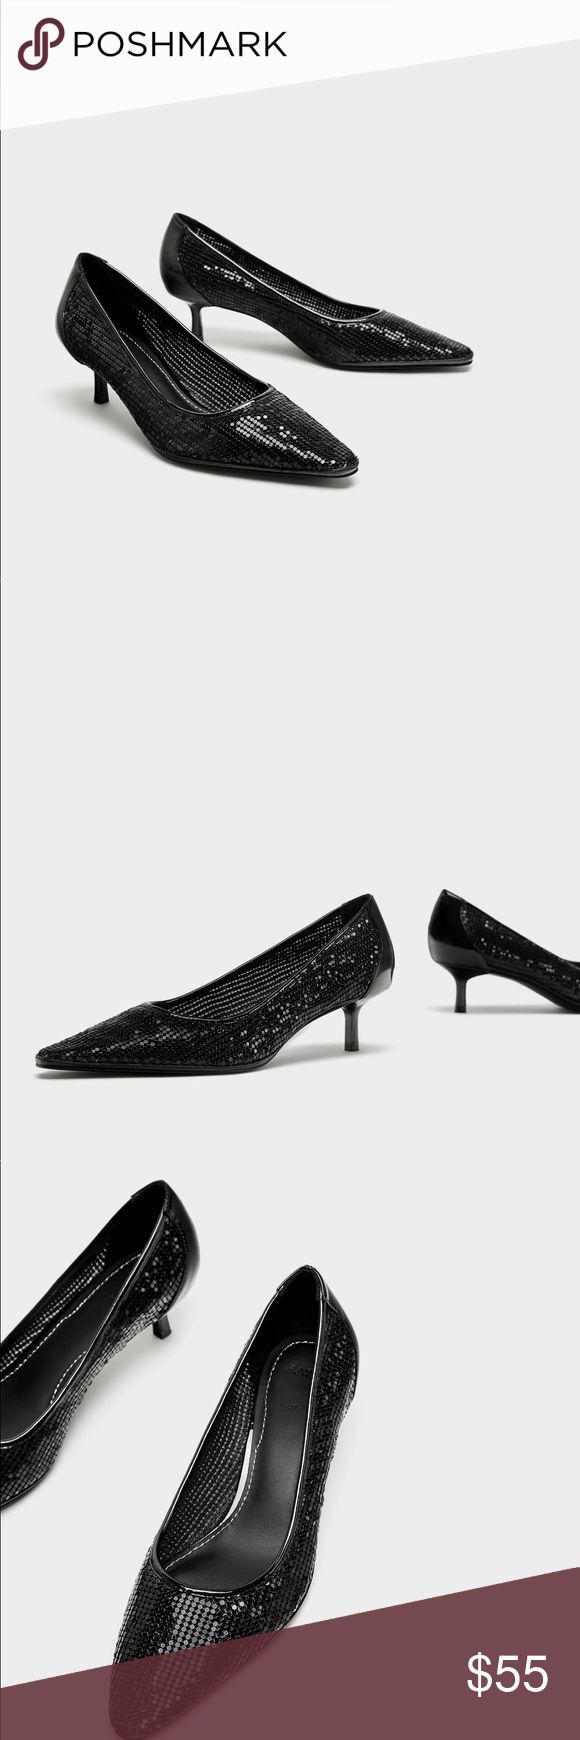 """ZARA Metal Mesh Low Heel court shoes US 9 EU 40 ZARA Meta Mesh Low Heel court shoes US size 9 EU size 40 Black mid-heel shoes. Mesh detail on the upper. Patent finish back. Heel height 2.0"""" New with tag Zara Shoes Heels"""